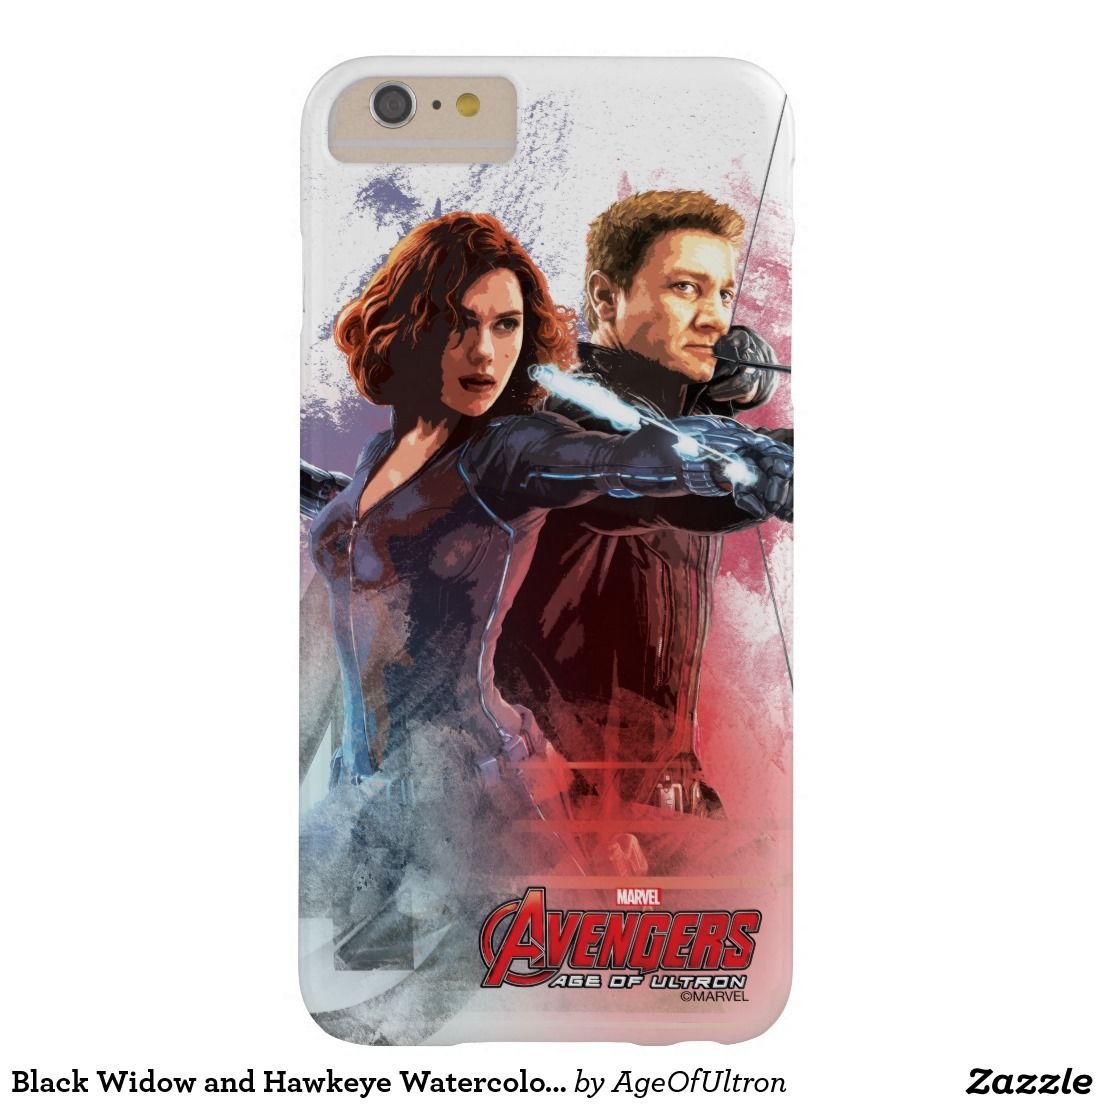 The Avengers Age of Ultron black widow iphone case